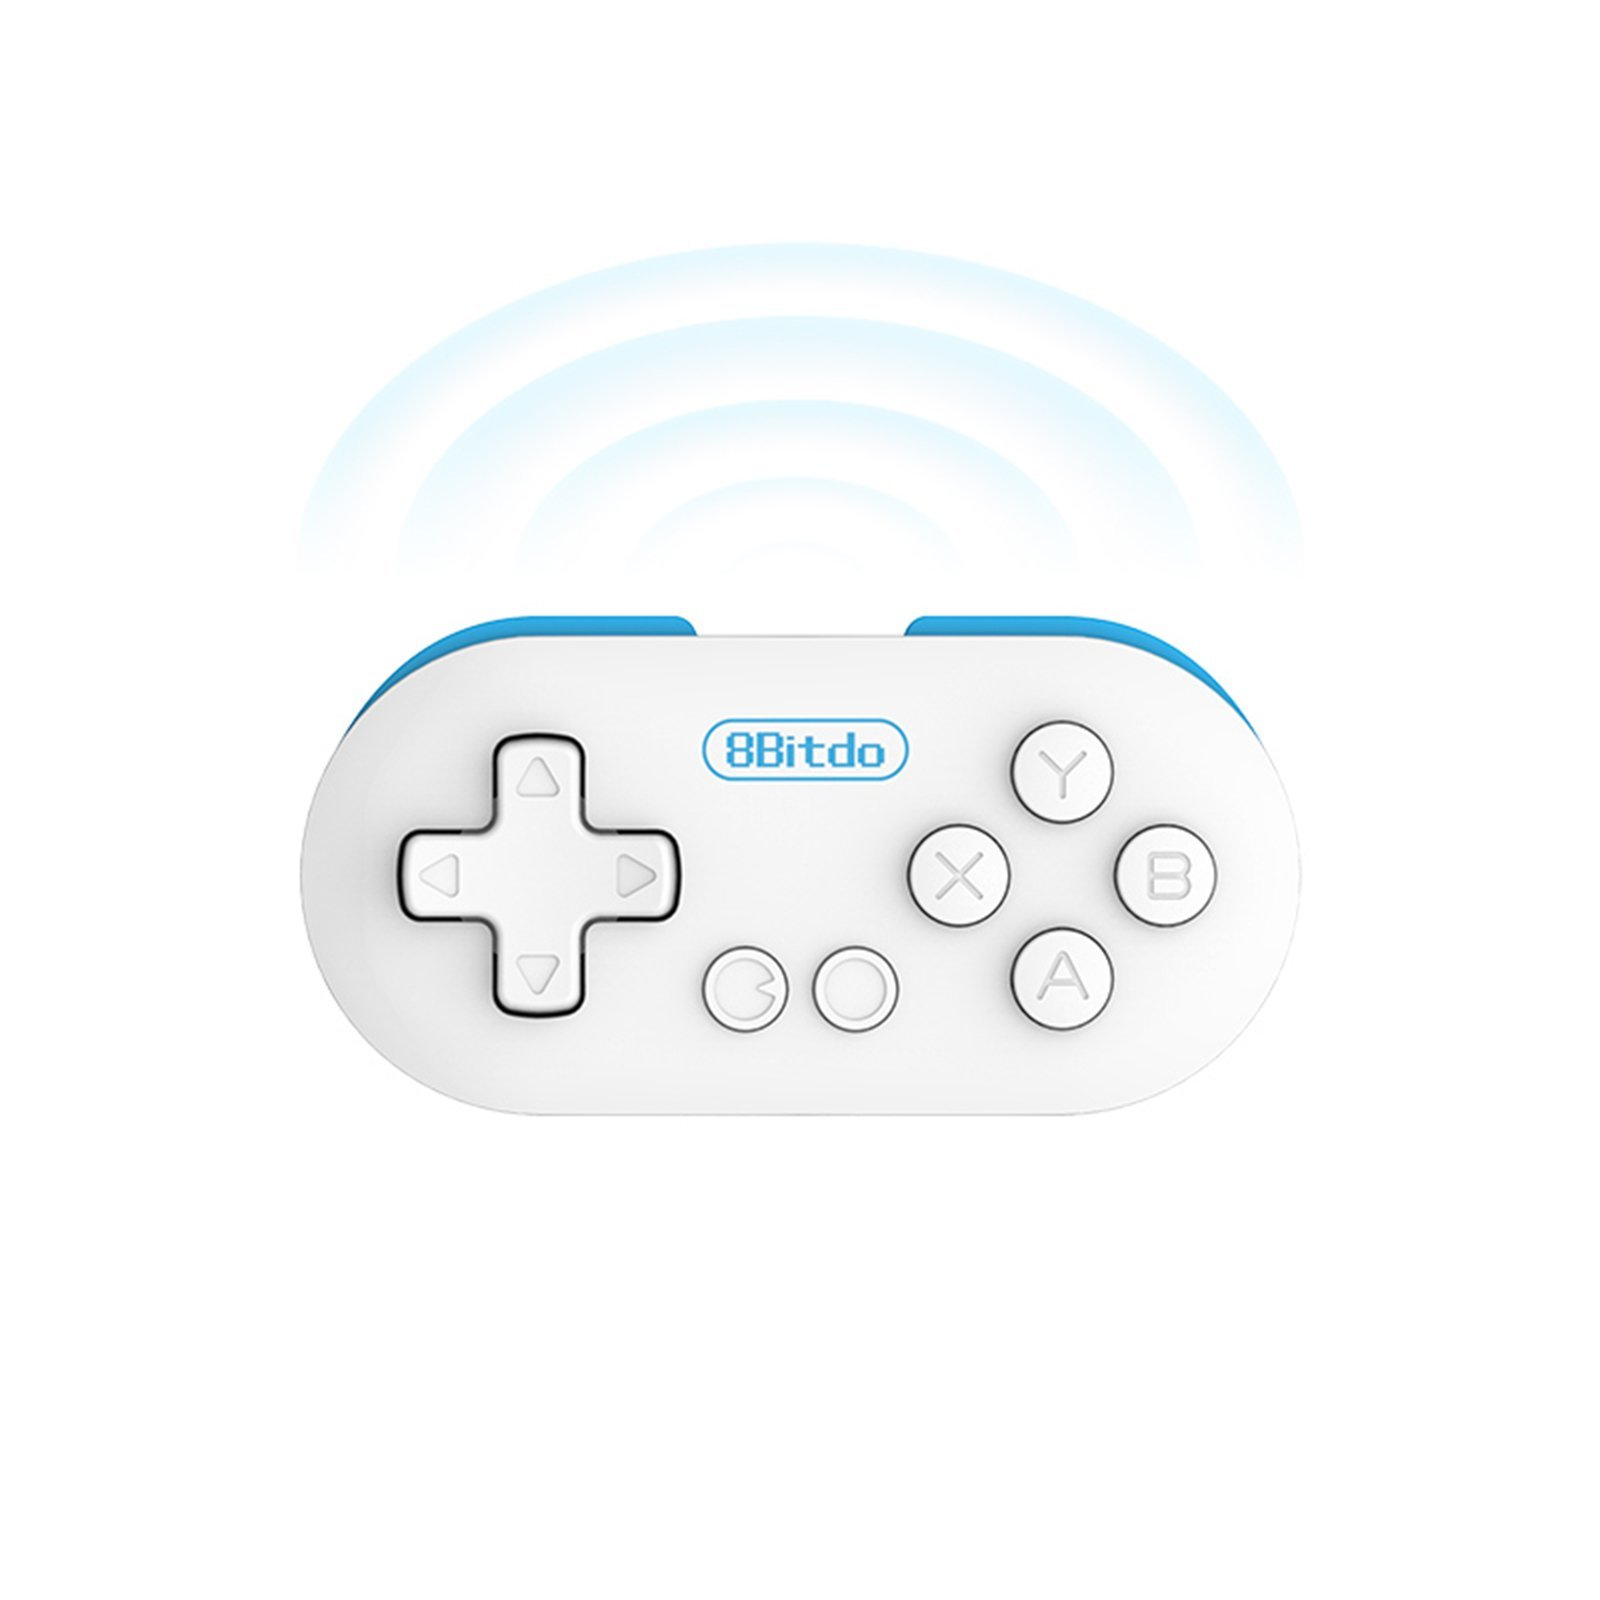 8bitdo Zero Mini Gamepad, Bluetooth Wireless Game Controller with Self Shutter function, Games Console for Android IOS Windows Iphone Ipad etc. Blue by FASTSNAIL